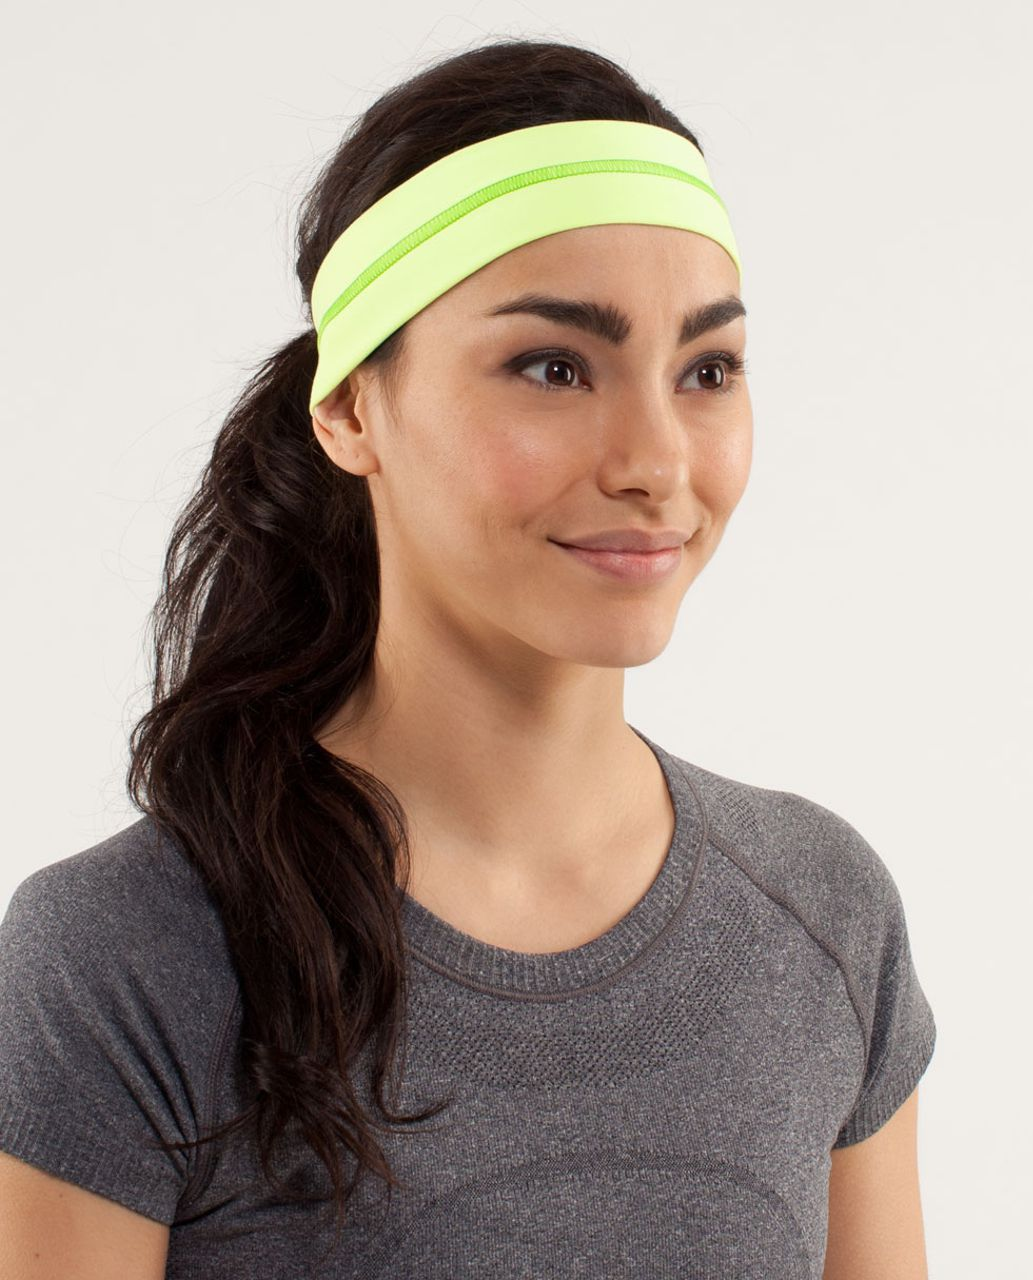 Lululemon Fly Away Tamer Headband - Faded Zap